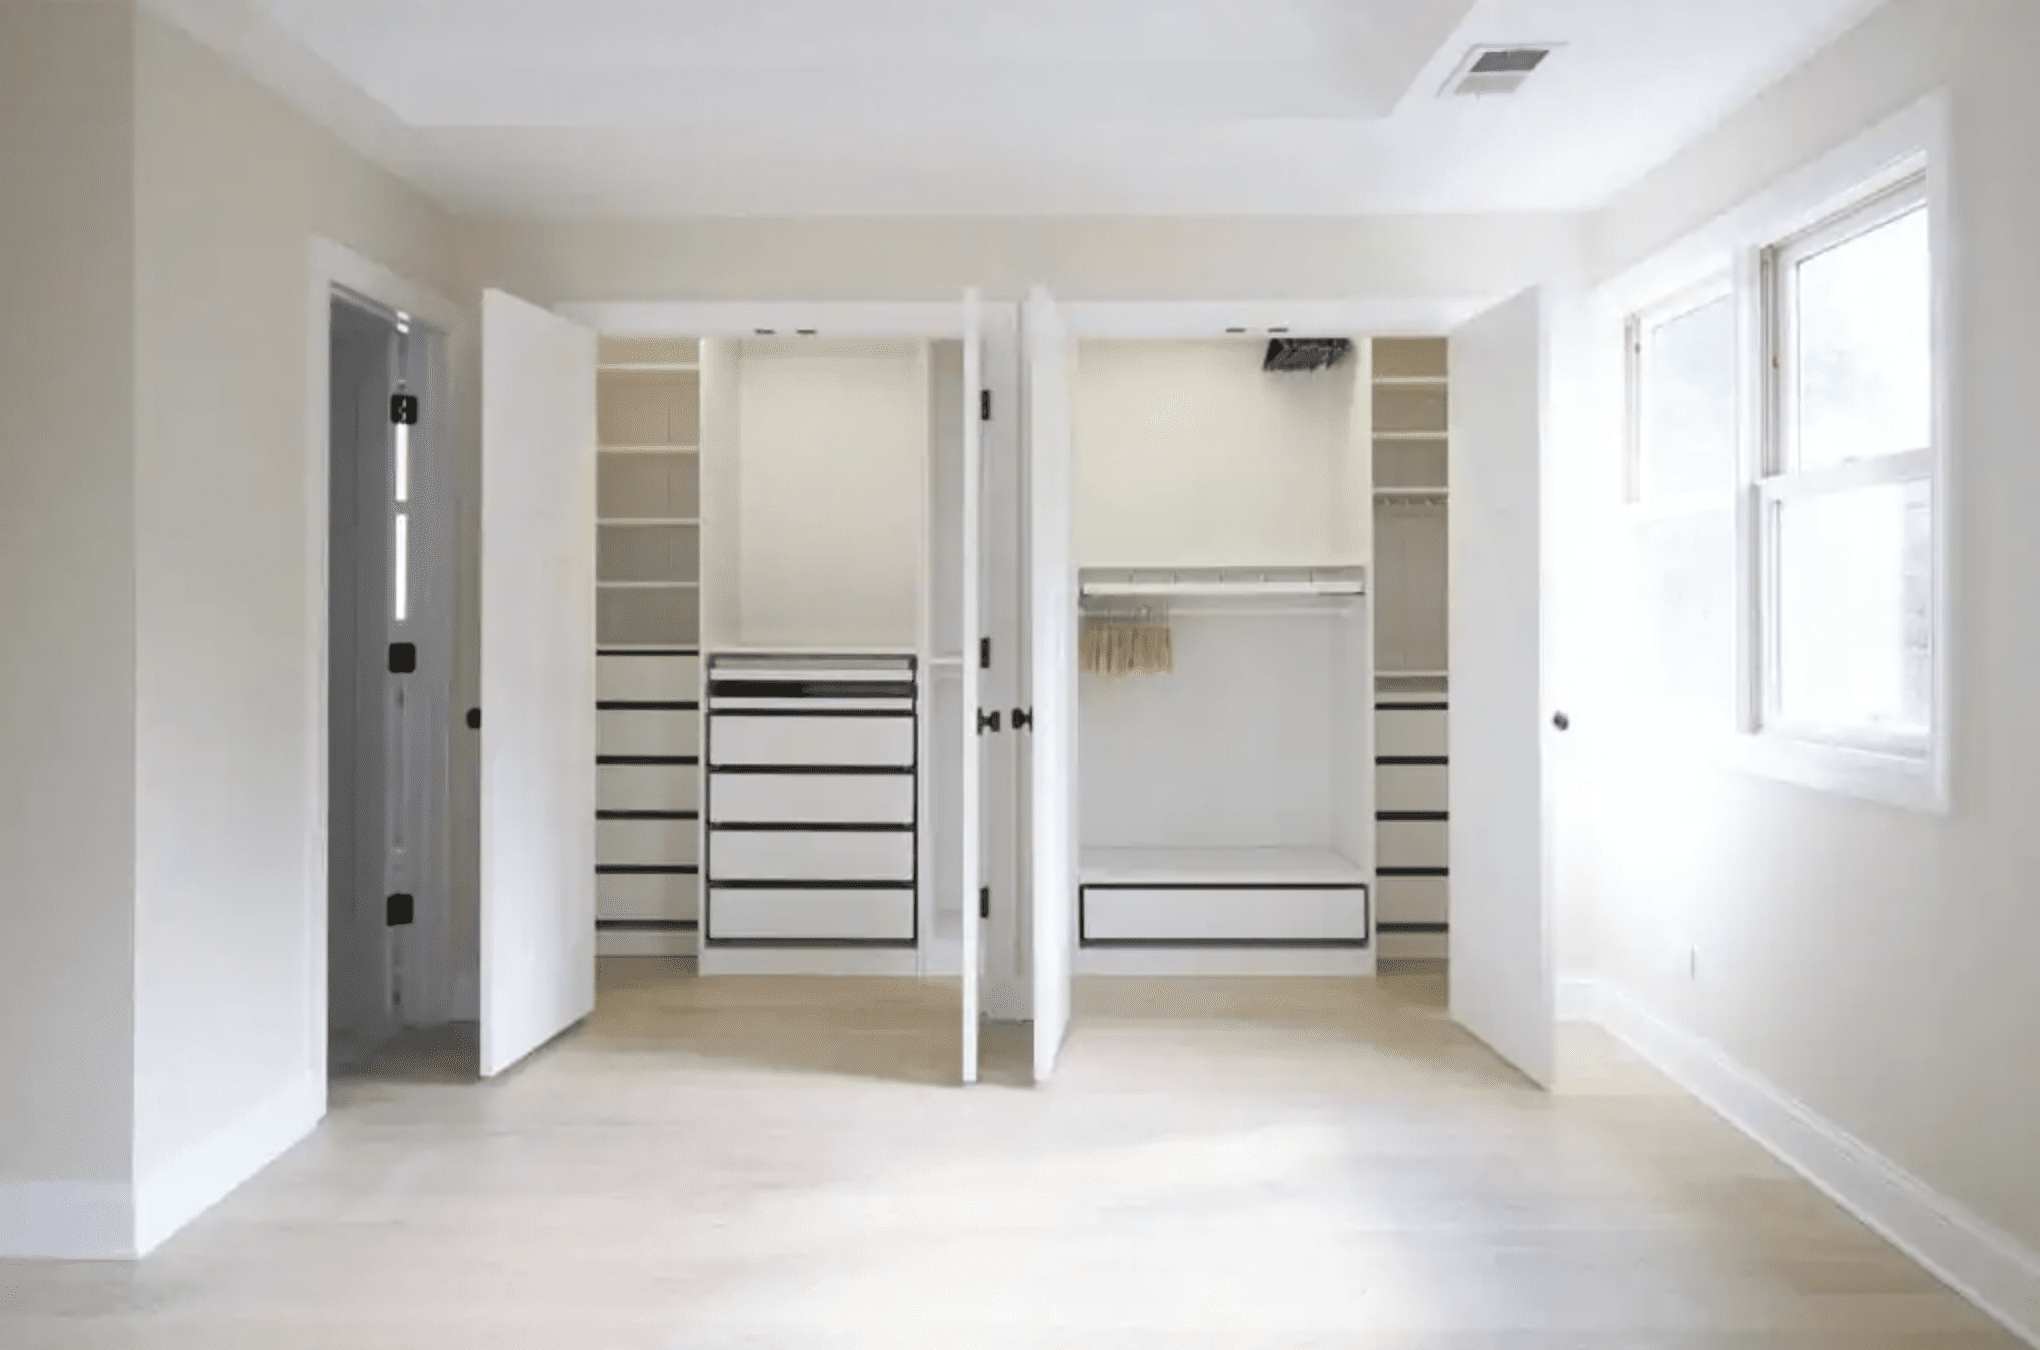 A renovated IKEA closet without clothes in it.